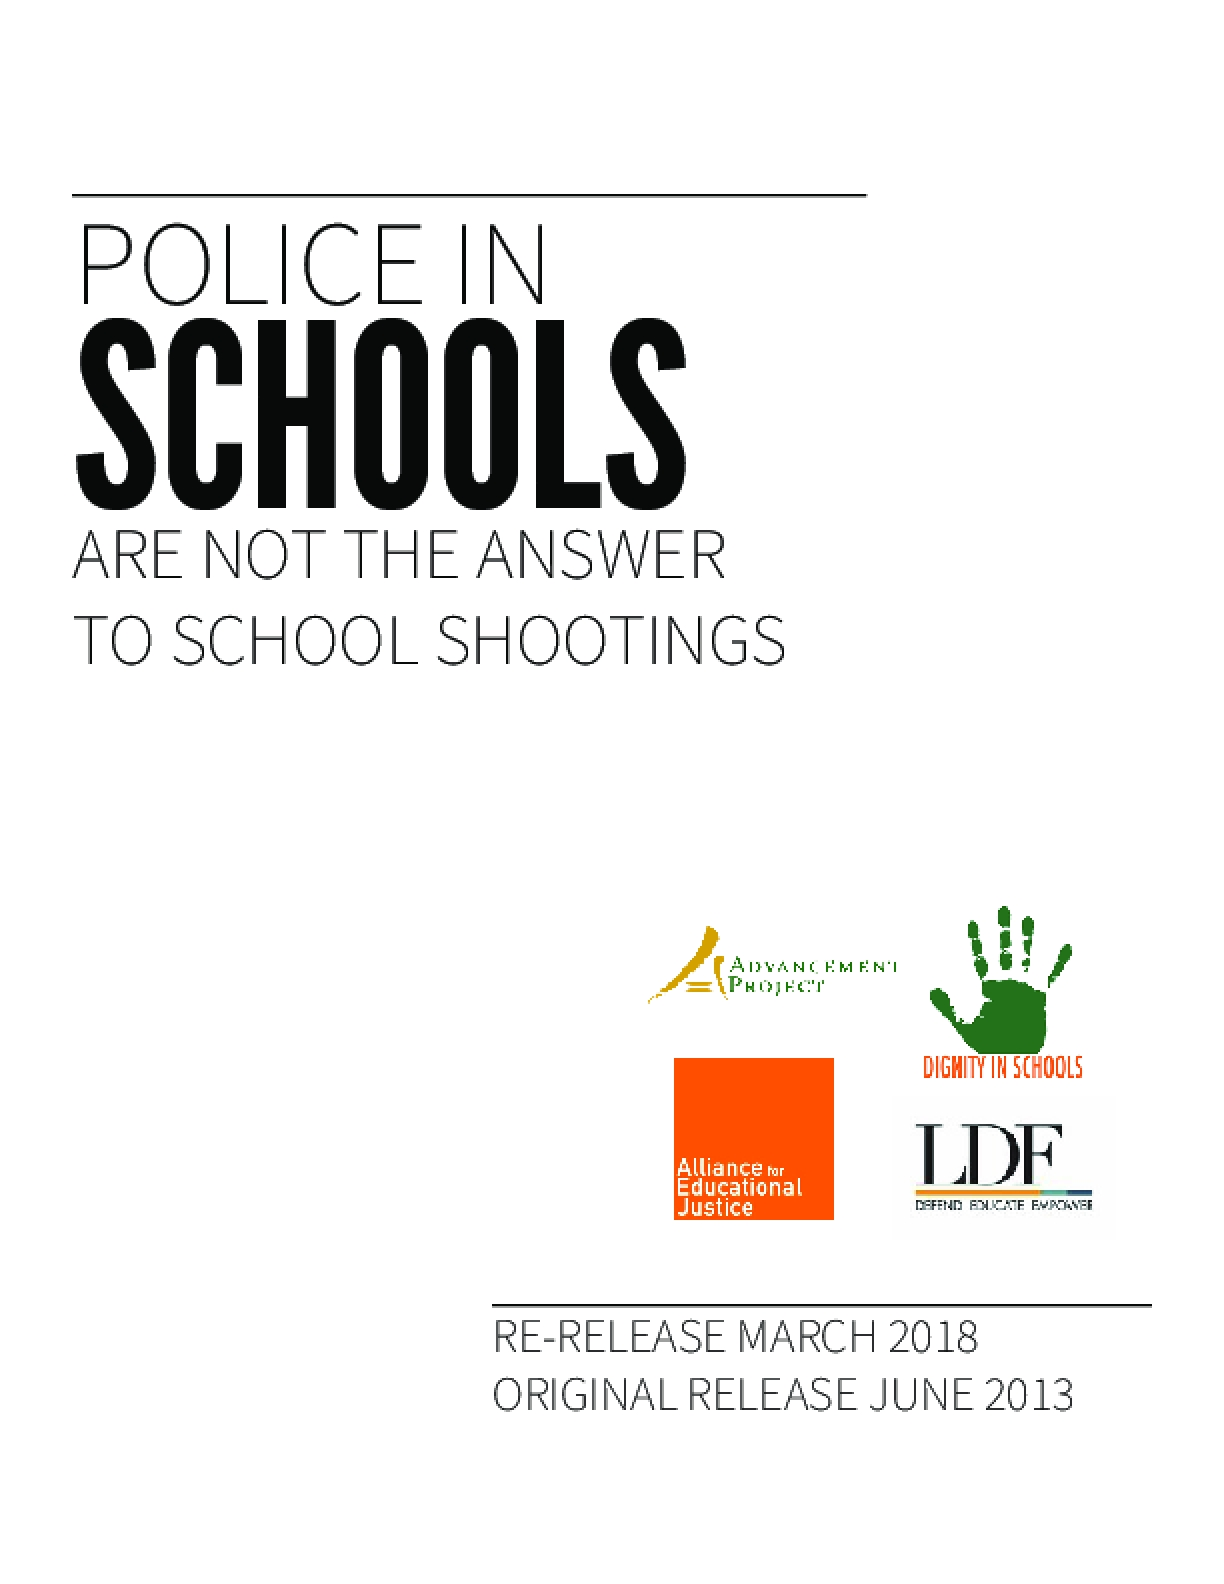 Police in Schools Are Not the Answer to School Shootings